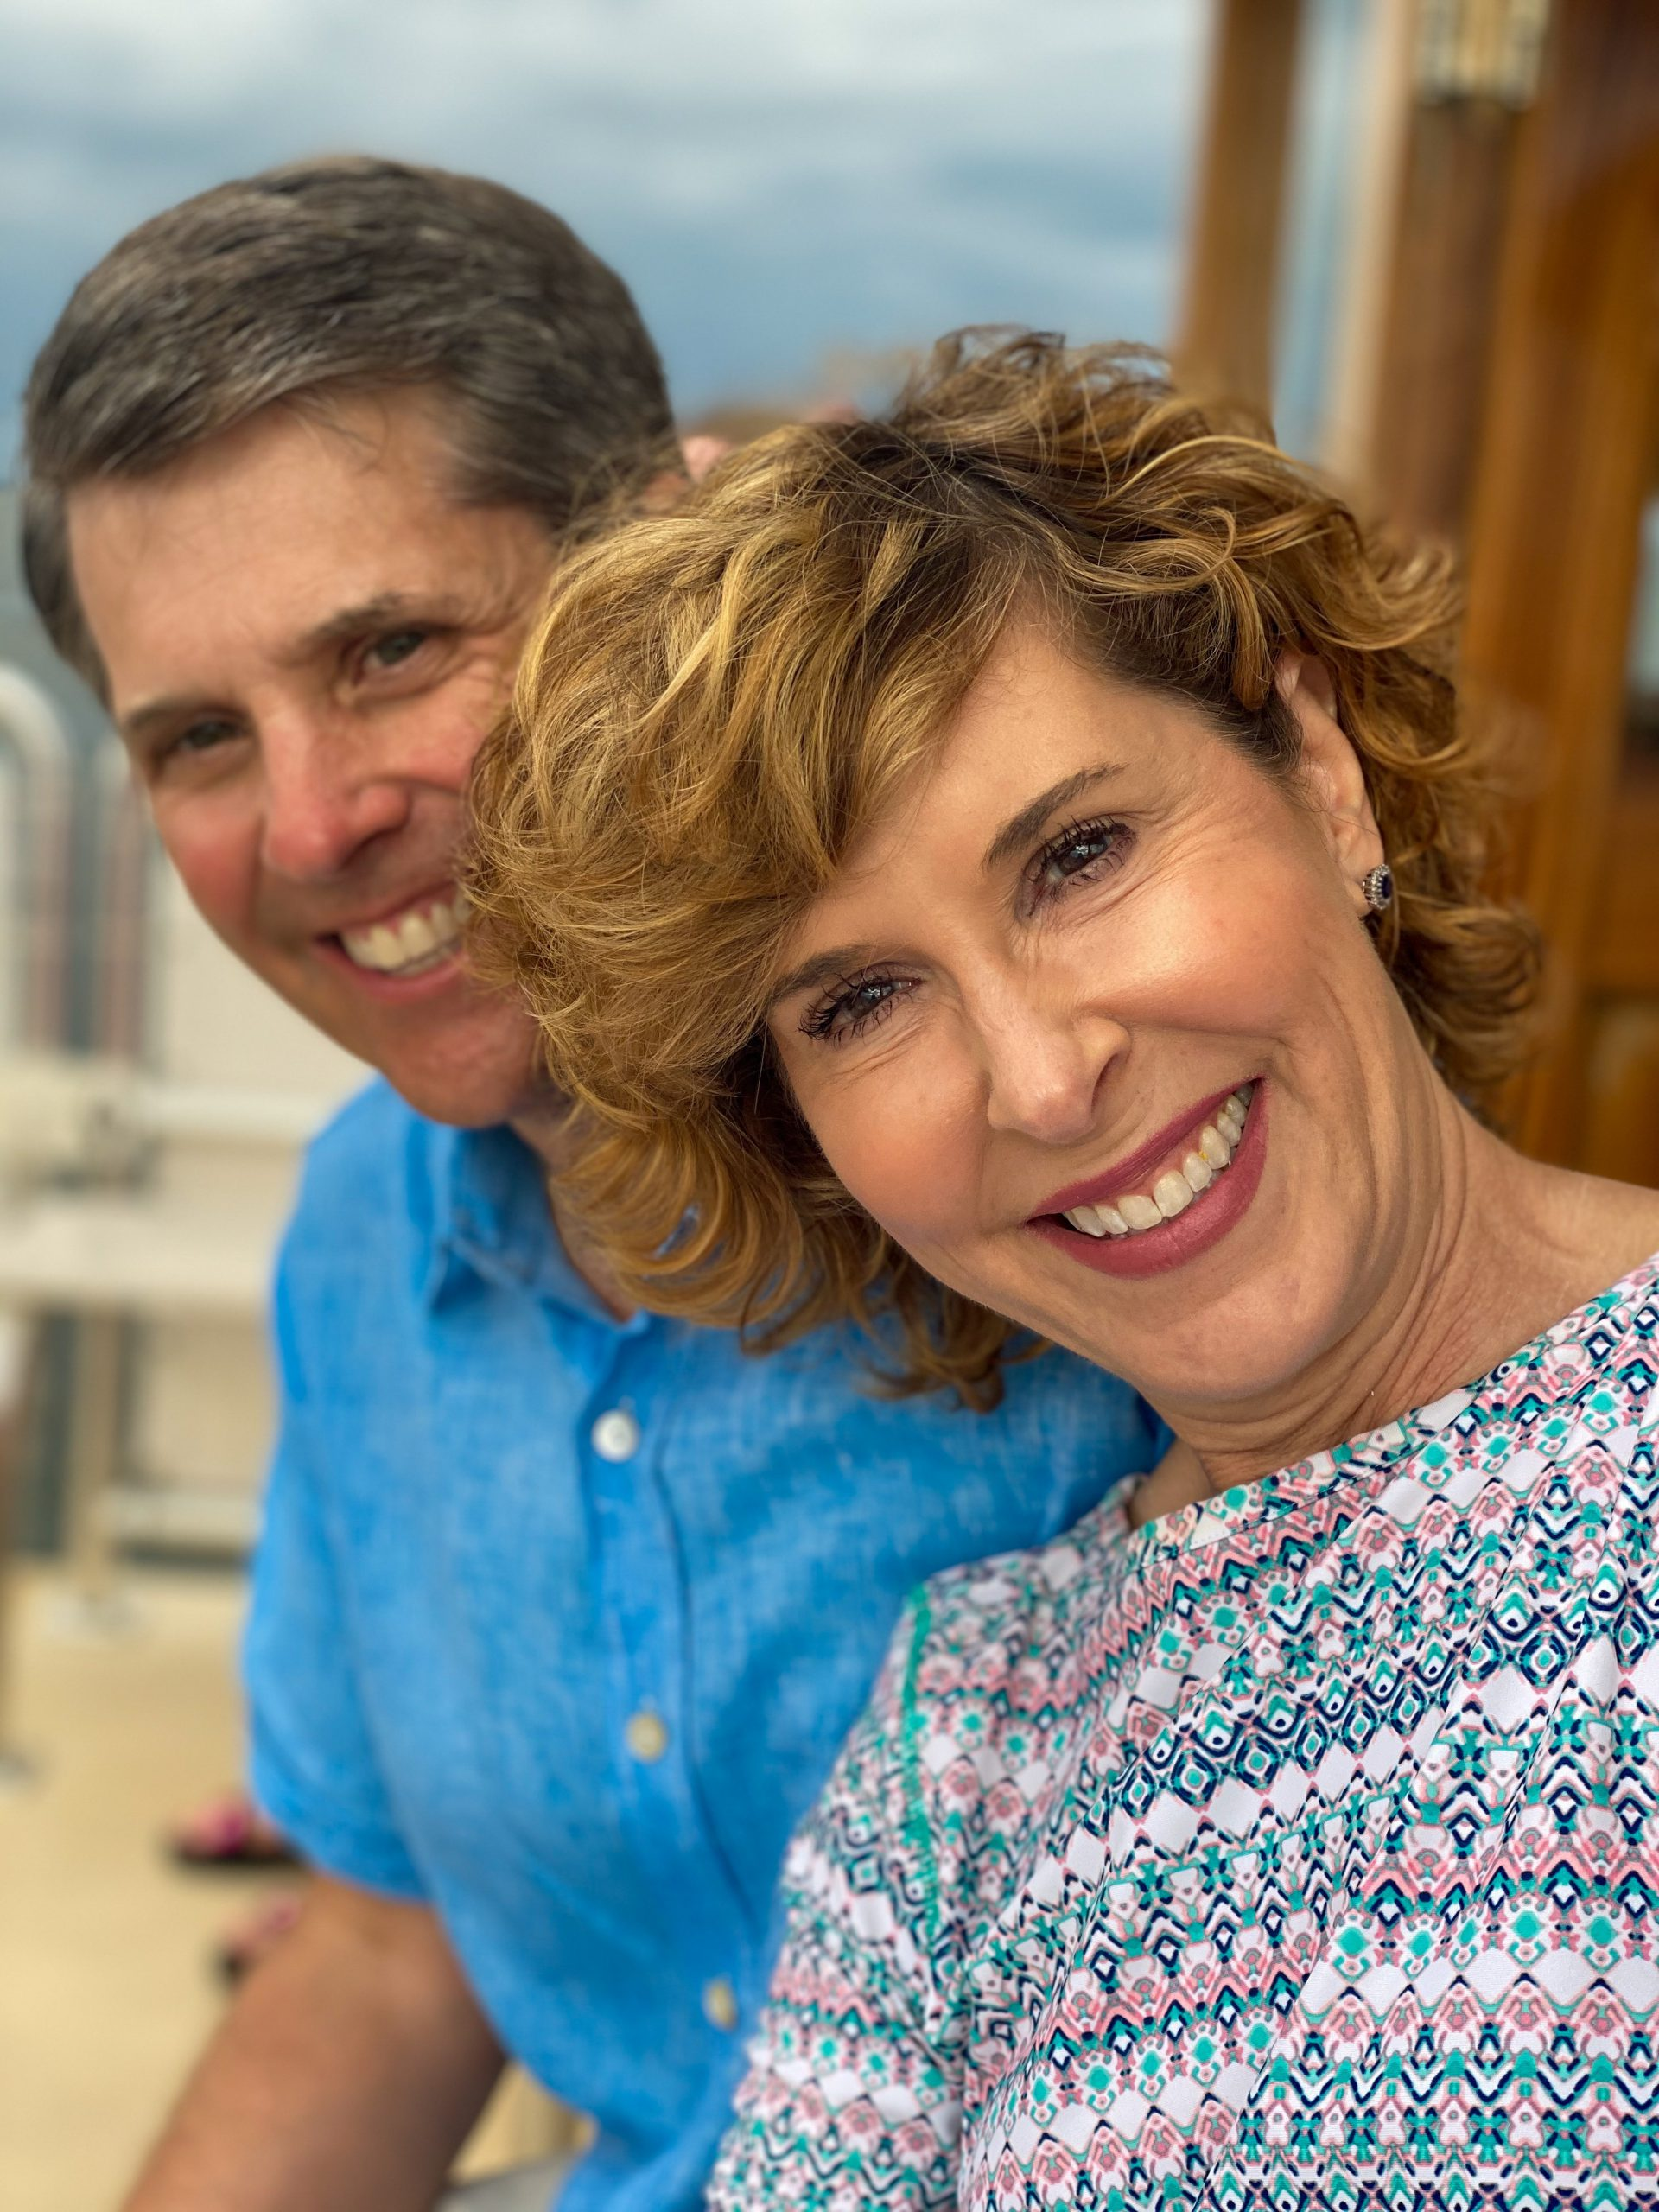 8 Great Date Night Ideas That Are Perfect for Empty Nesters